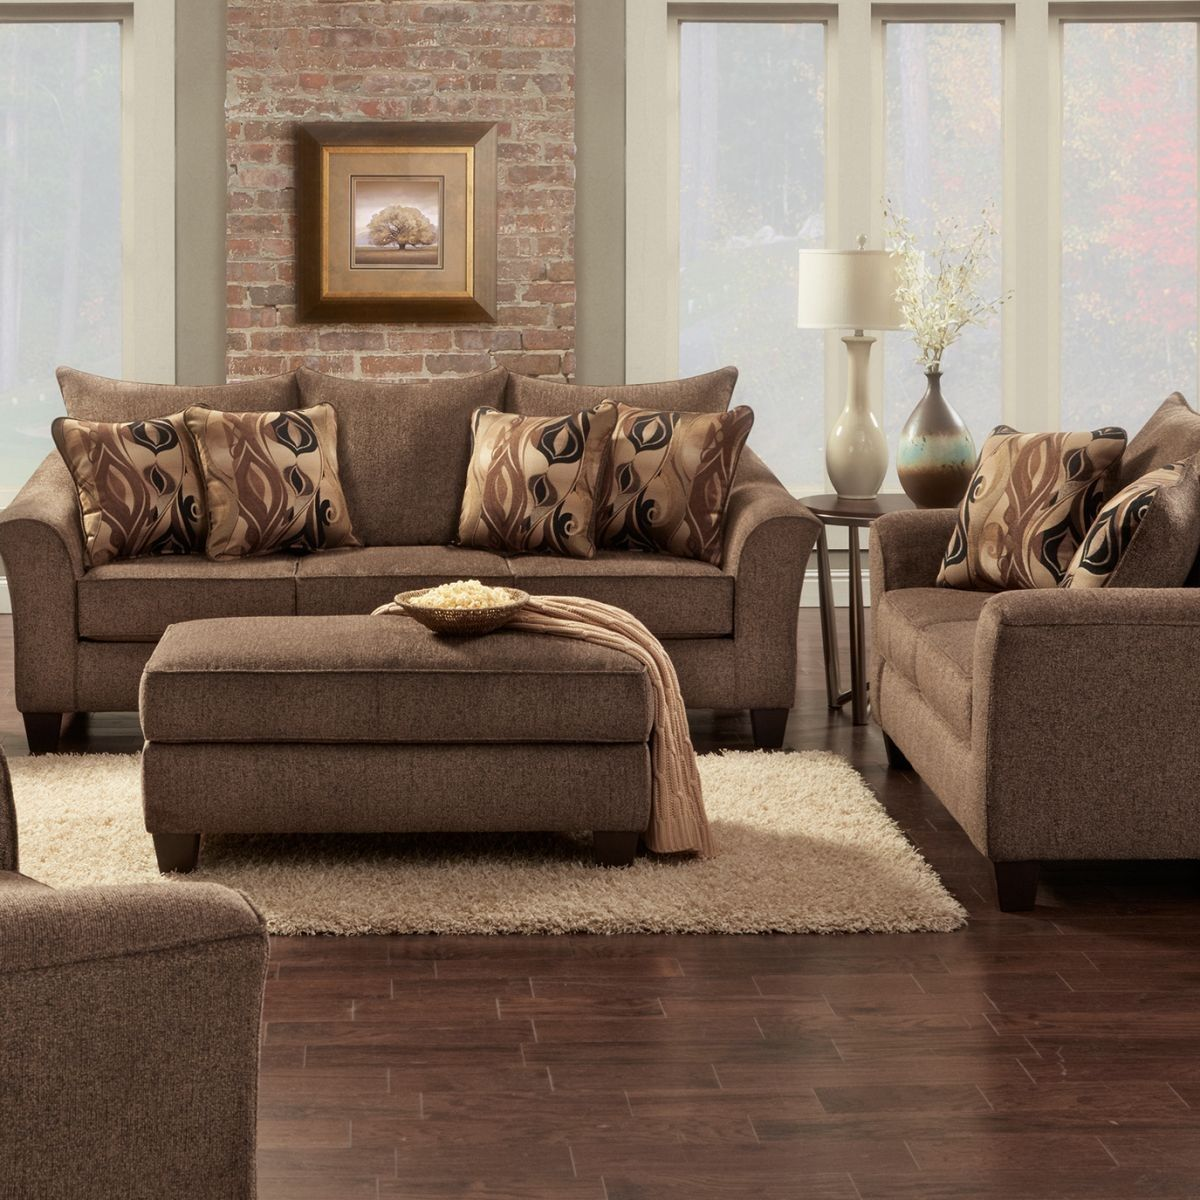 Camero Brown Sofa Loveseat Brown Living Room Decor Living